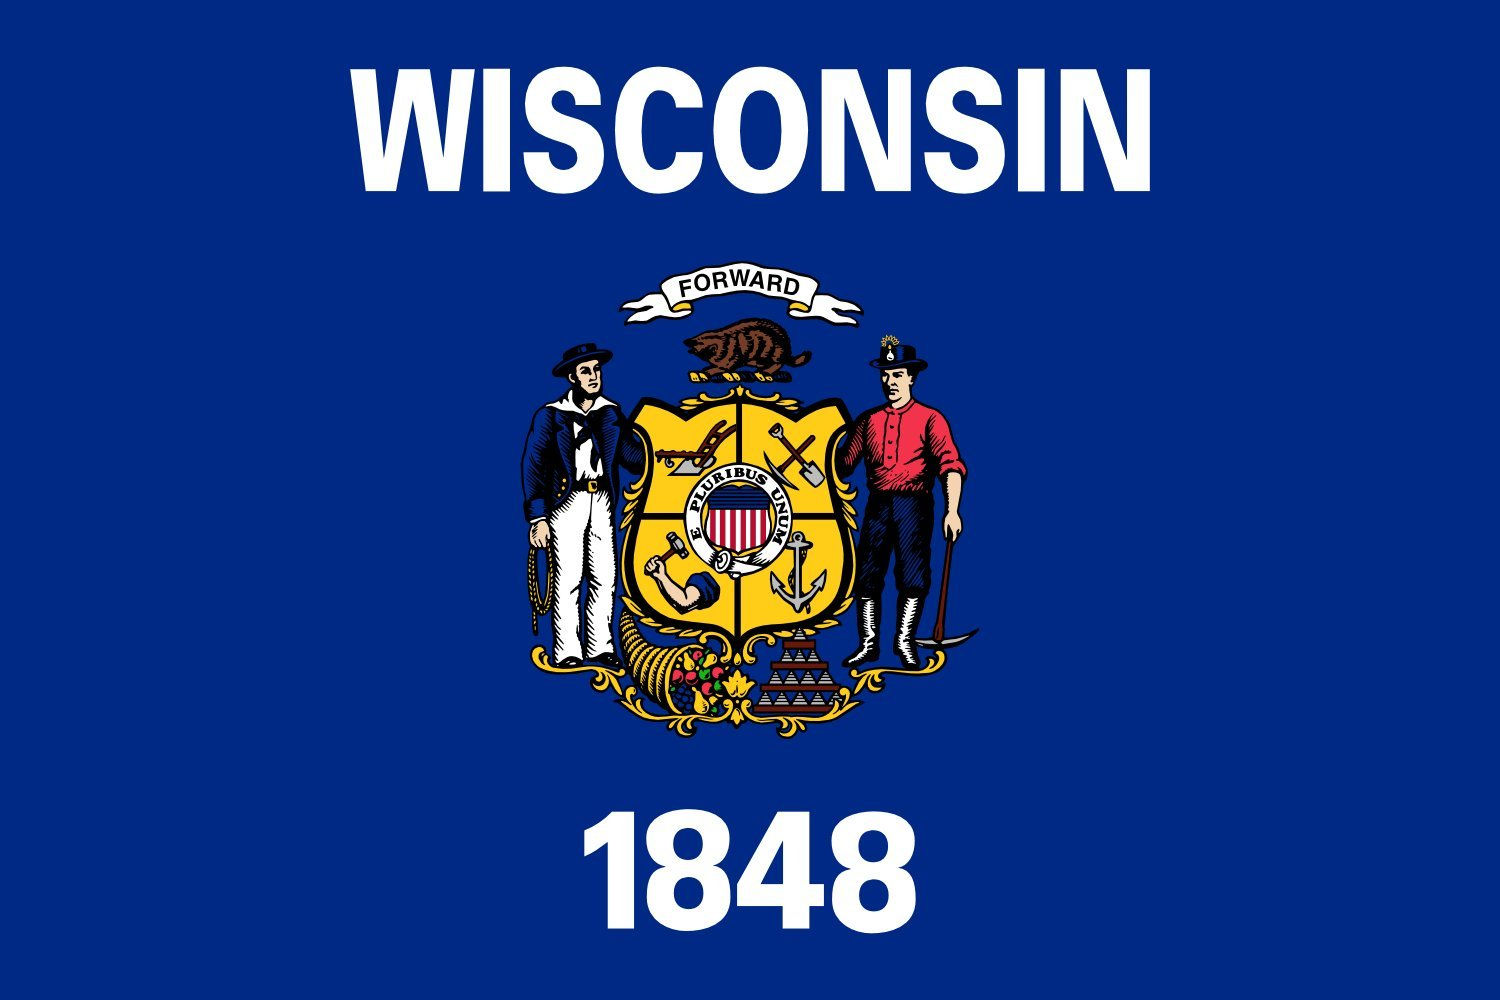 magFlags XXXL Flag Wisconsin | landscape flag | 6qm | 64sqft | 200x300cm | 6x10ft -- 100% Made in Germany -- long lasting outdoor flag